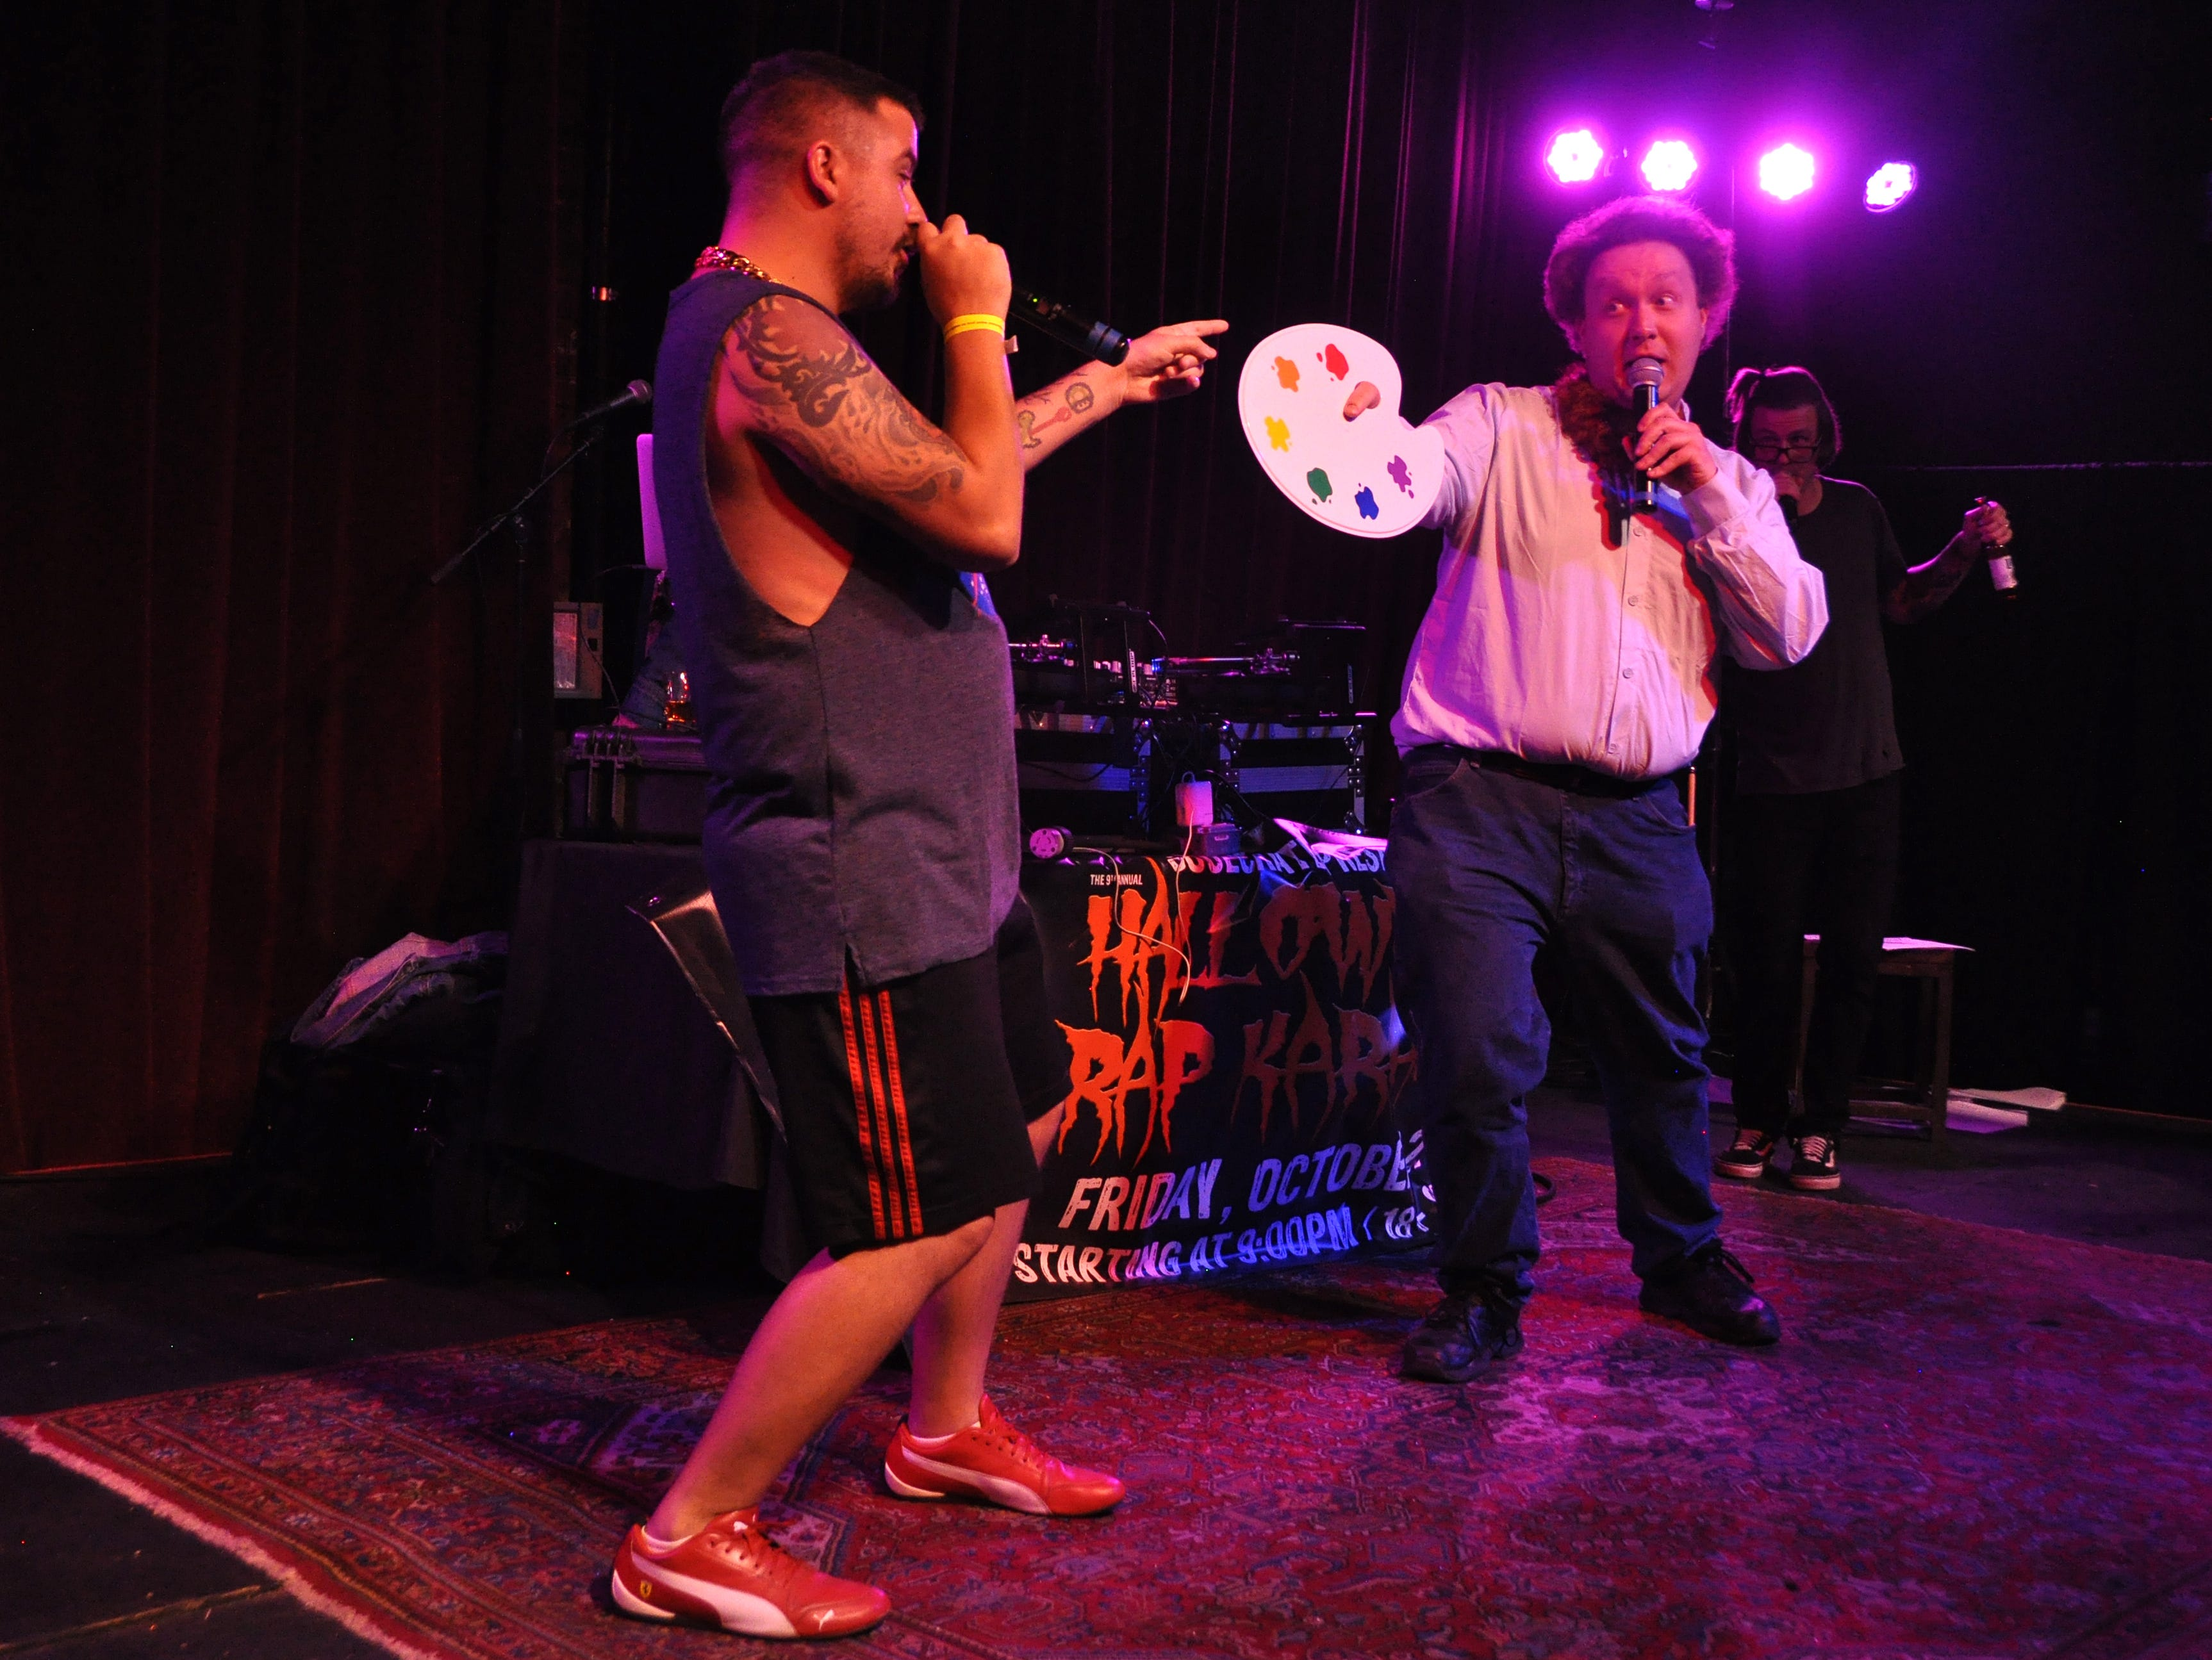 Zach Dresch, right, and Garrett Rahn perform at the 10th Annual Halloween Rap Karaoke show at Icon Lounge Friday night. The event is was created by the Sioux Falls band Soulcrate.